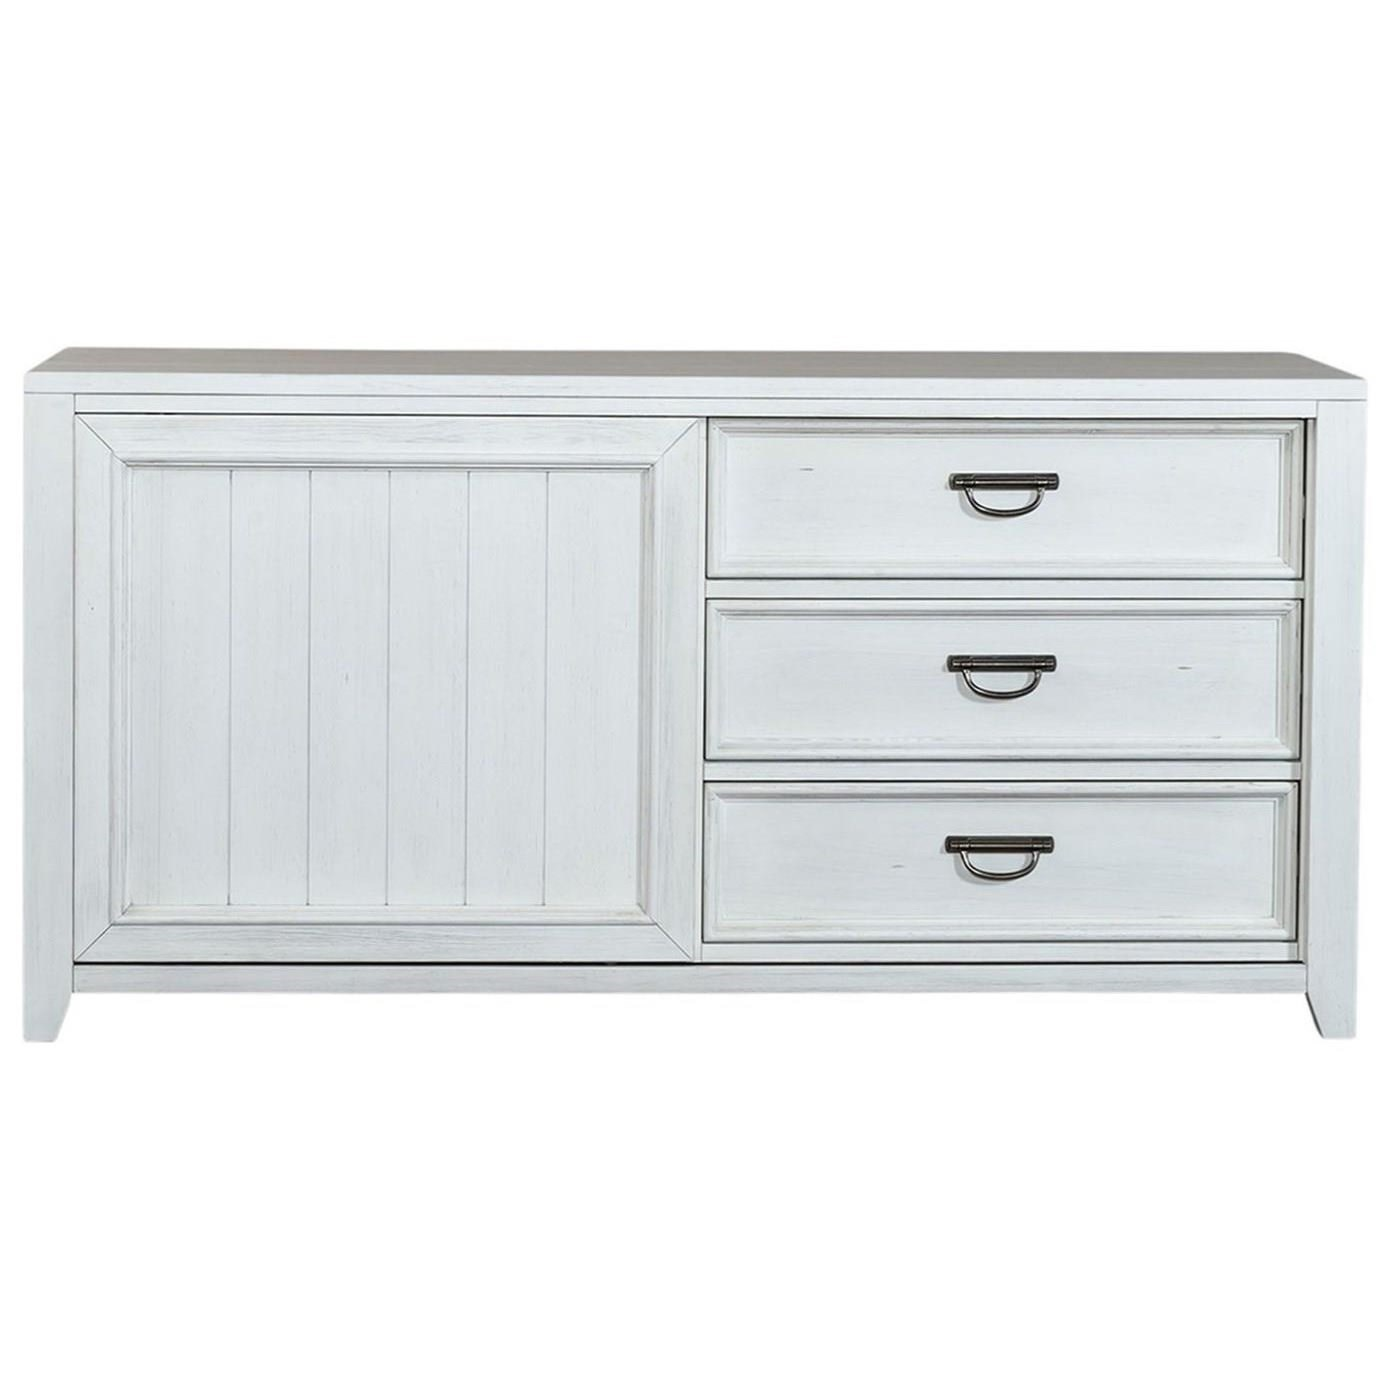 Liberty Furniture Allyson Park Kid S Bedroom Sliding Door Dresser Zak S Home Dressers